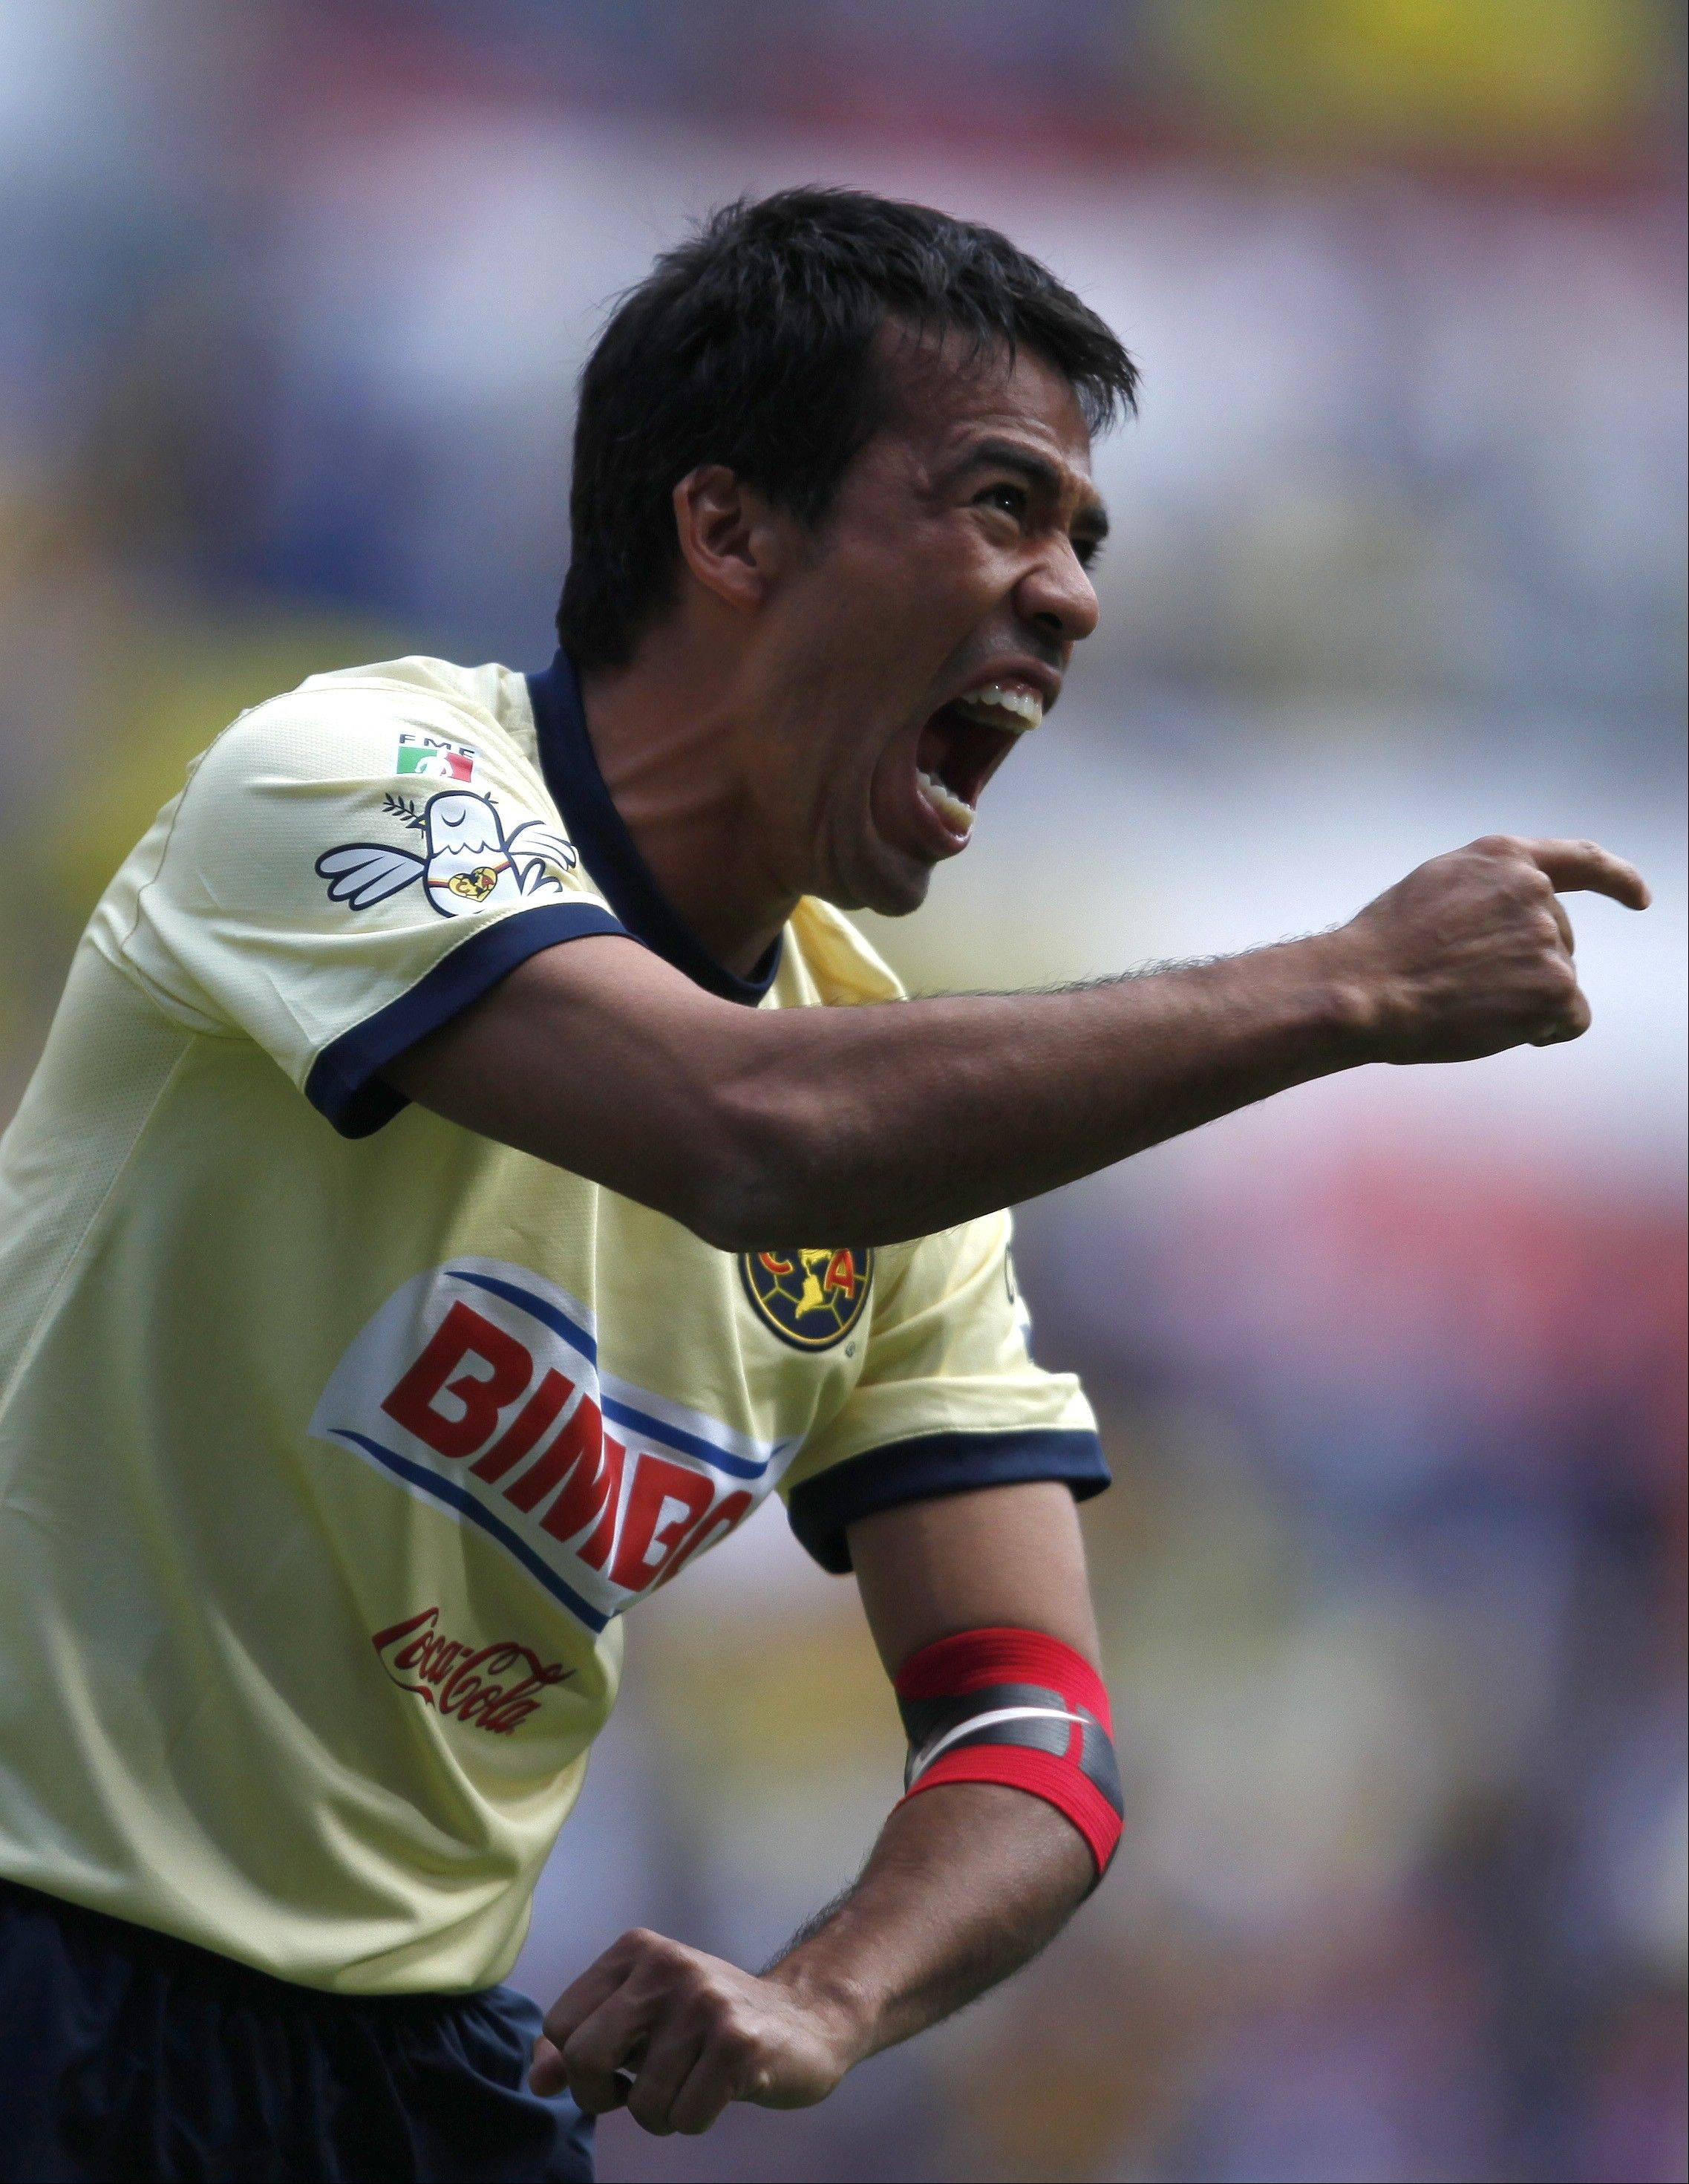 Can Club America midfielder Pavel Pardo provide the spark to help turn around the Chicago Fire's season? The former Mexico National Team star could be in the Fire lineup next week.